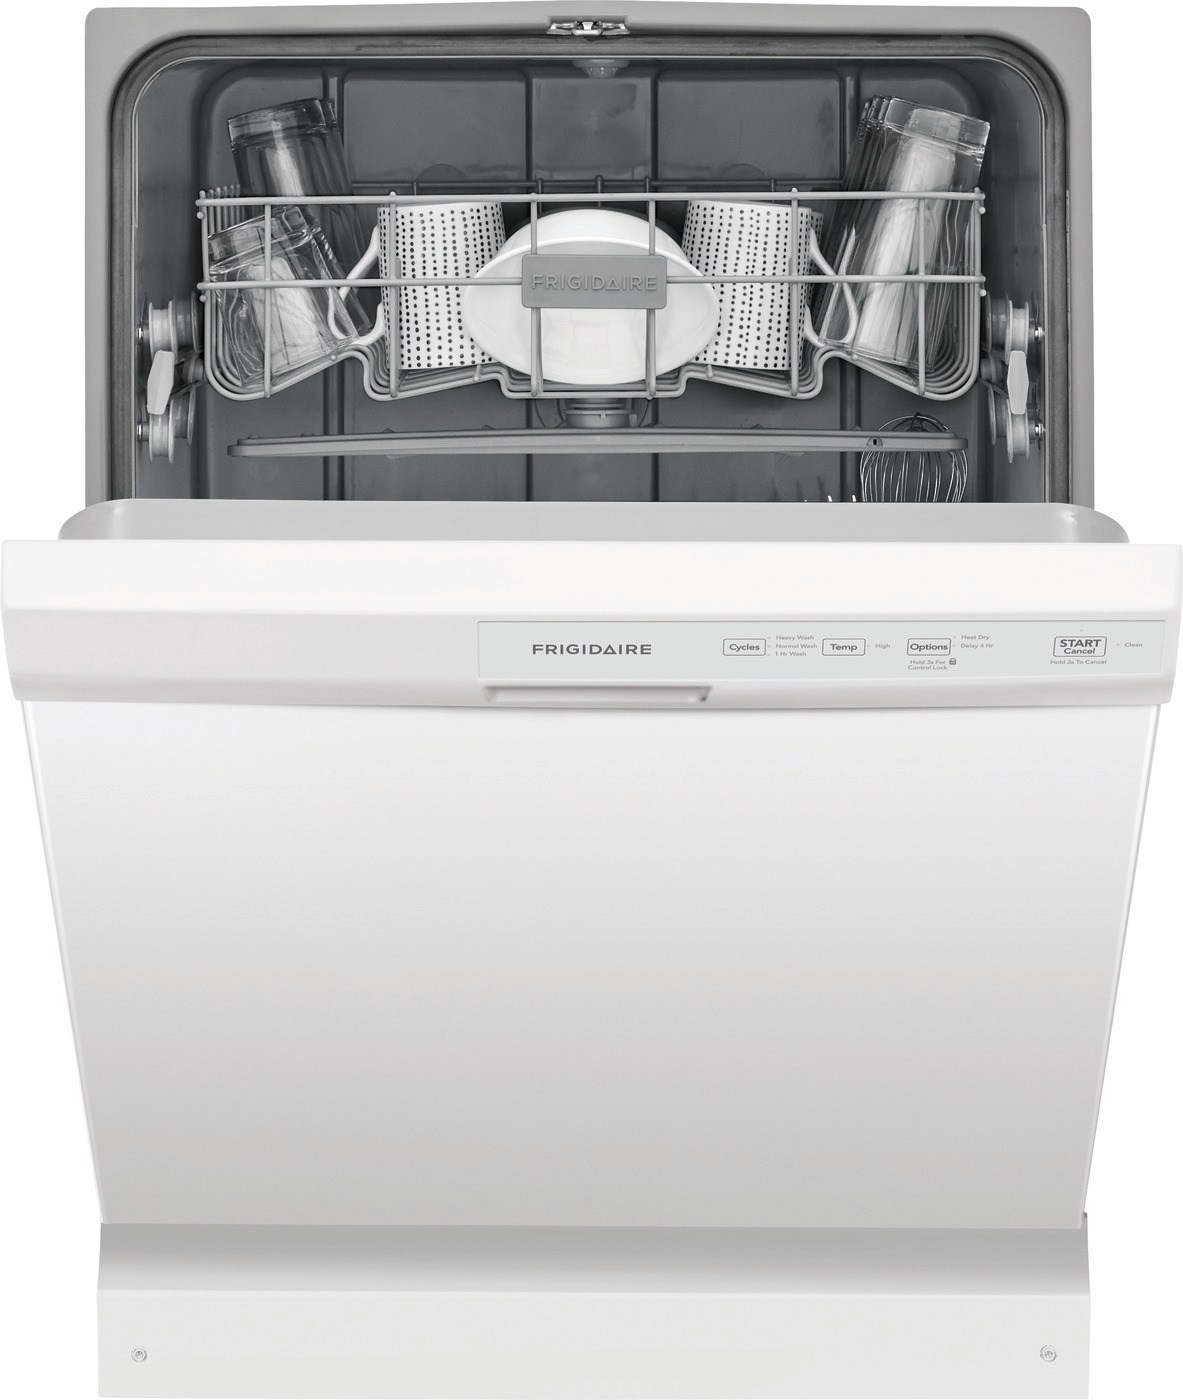 Frigidaire 24 White Built-In Dishwasher Tools & Home Improvement ...